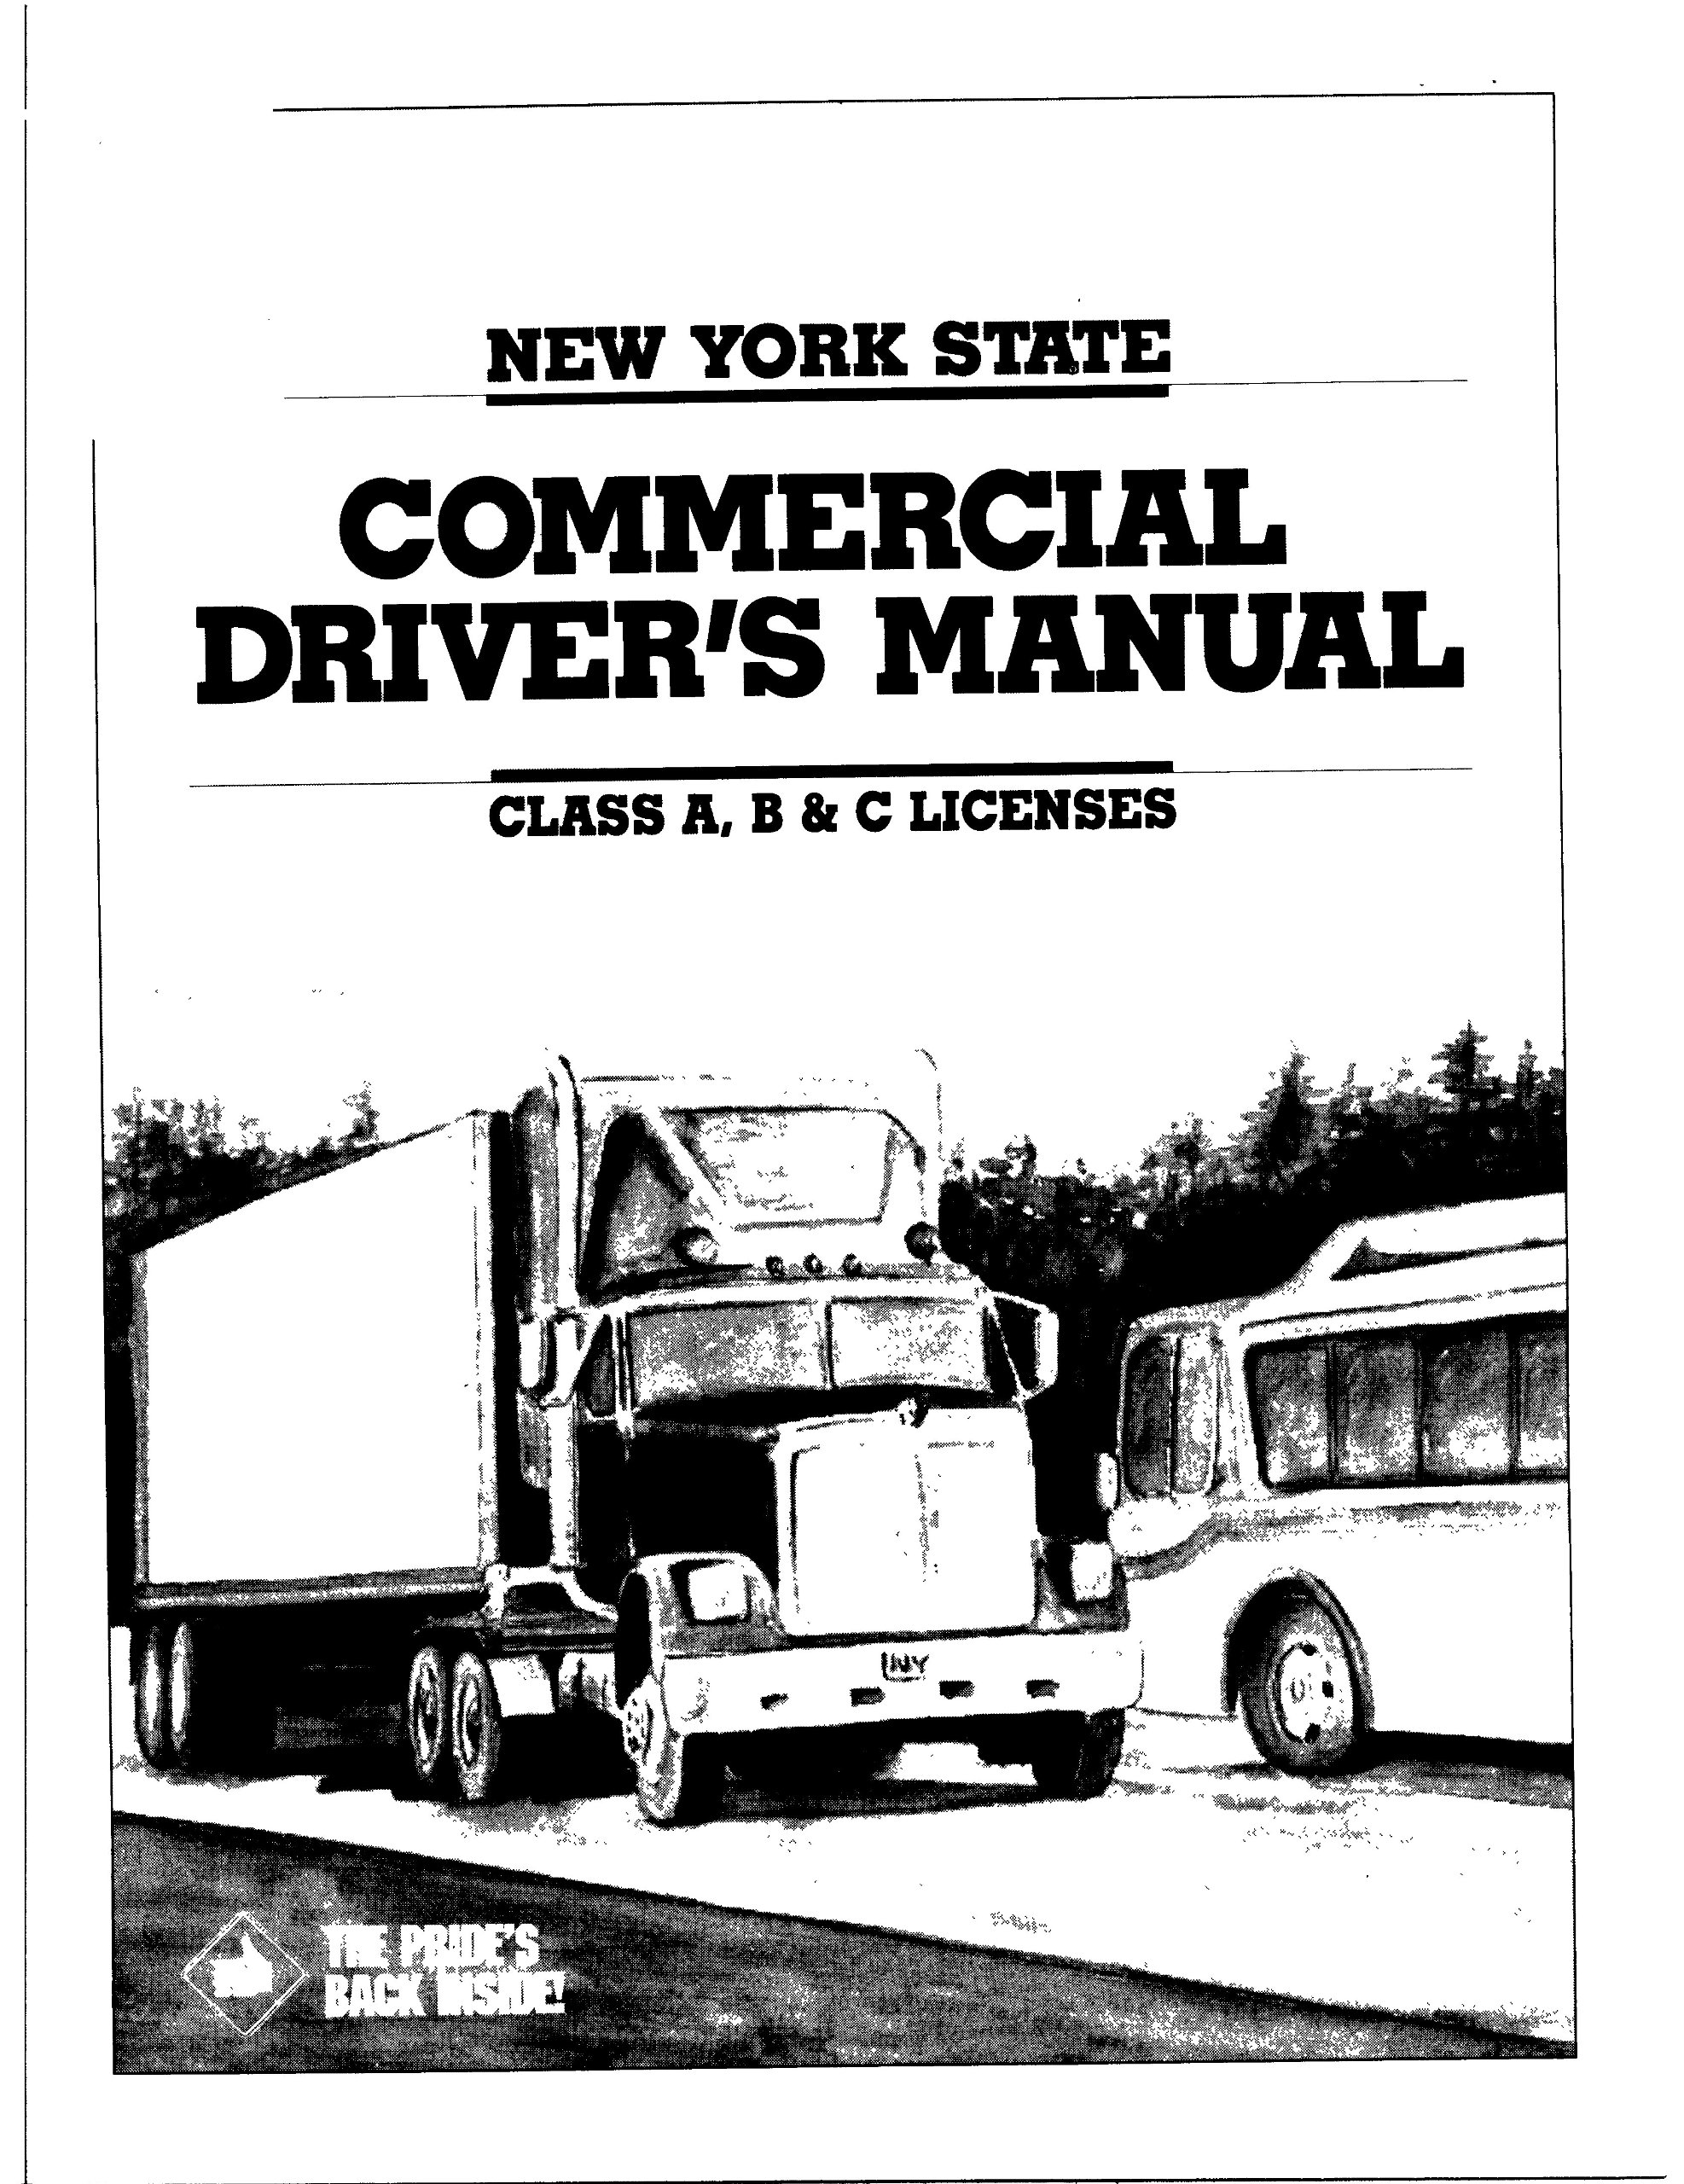 commercial driver license manual ny